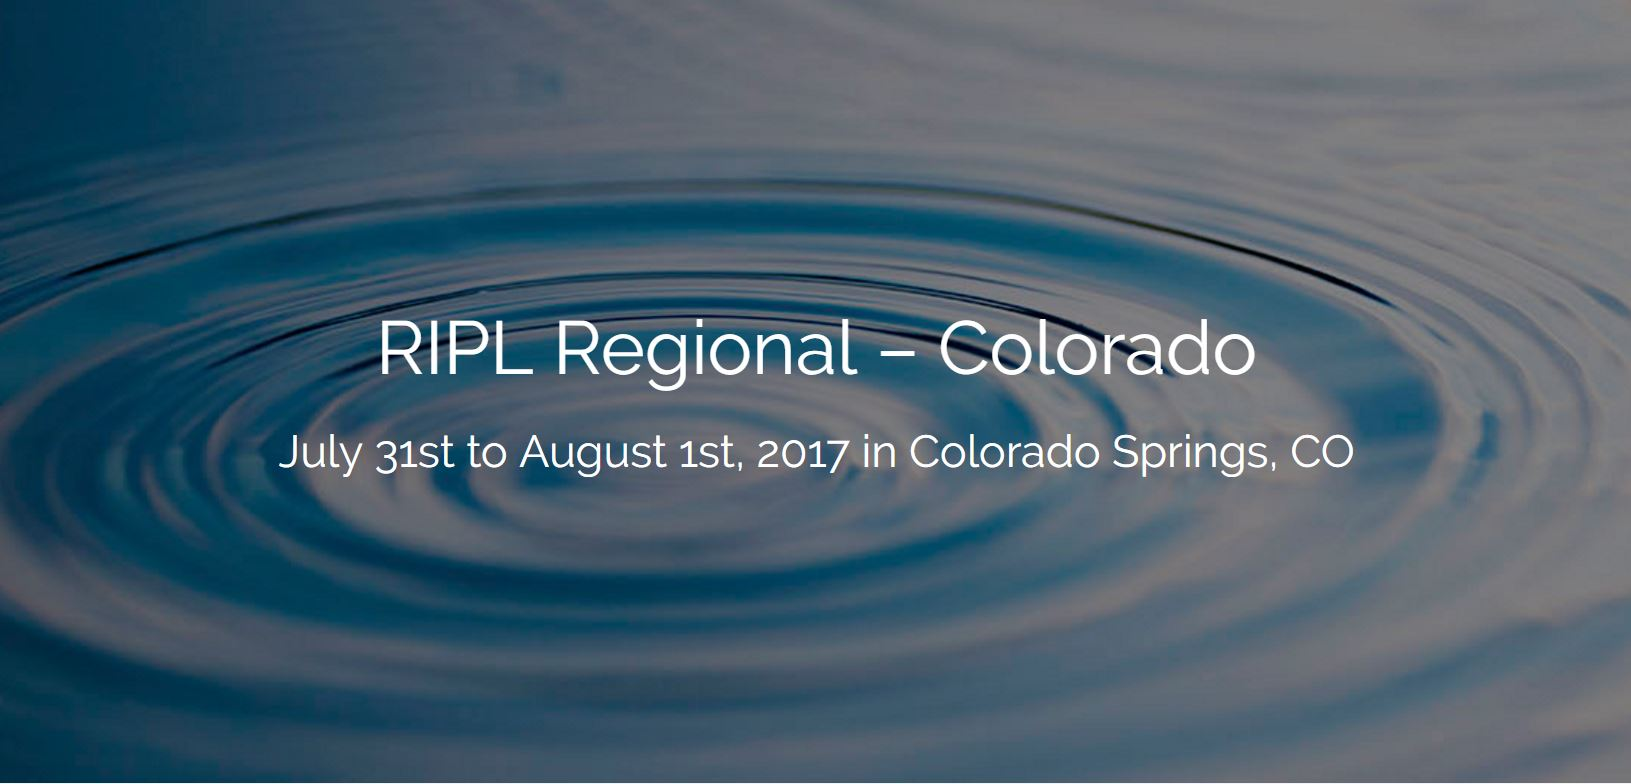 Apply for a travel stipend for the 2017 Colorado RIPL Regional!